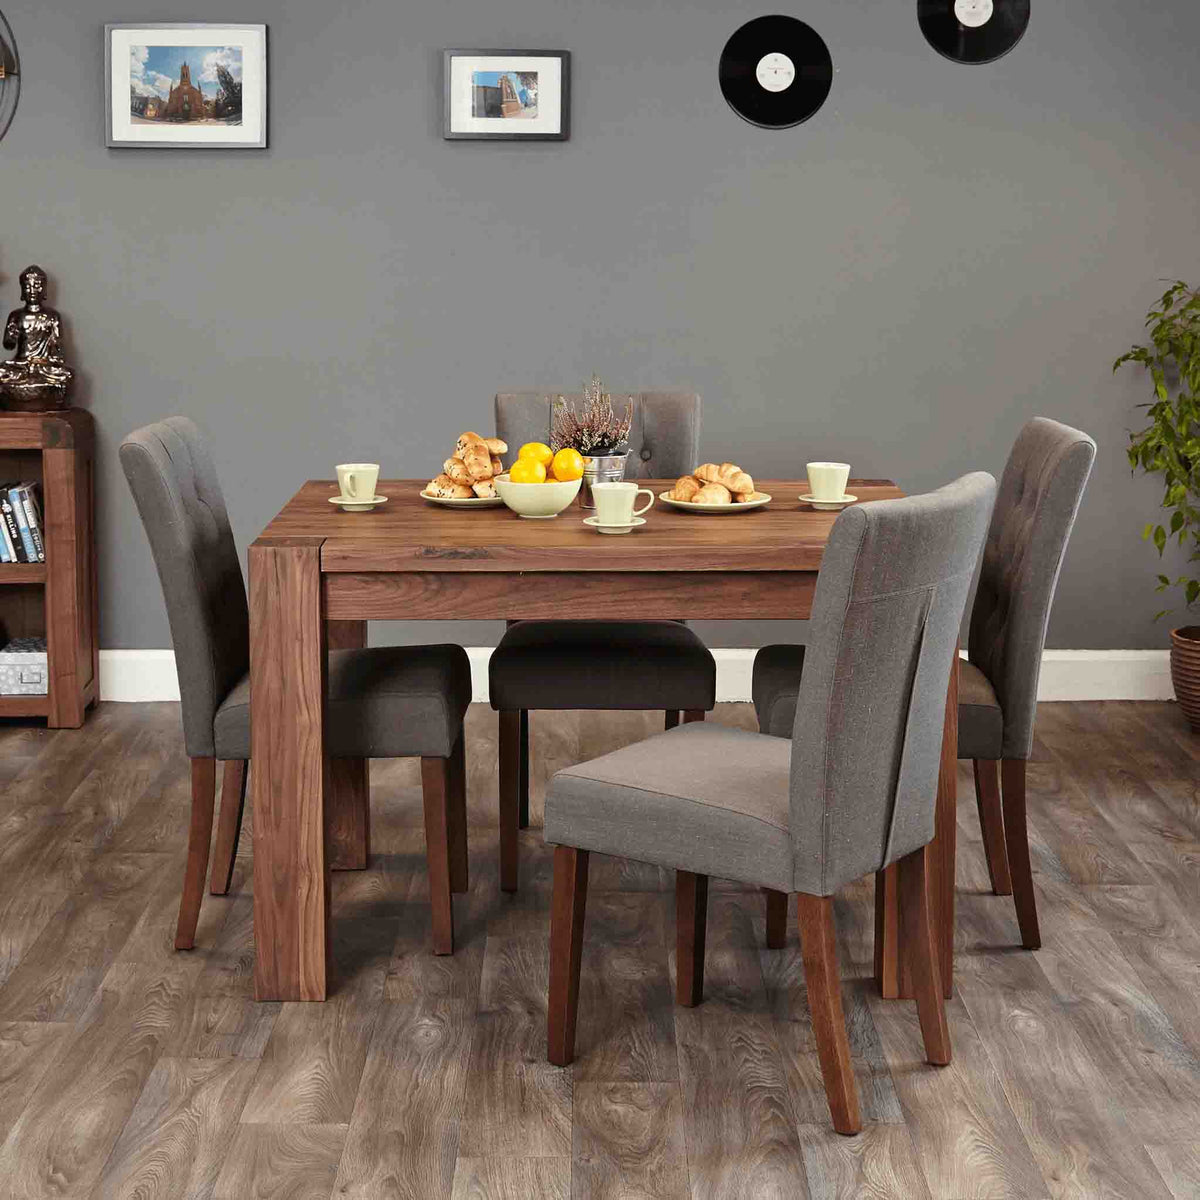 The Salem Walnut 4 Person Wooden Dining Table